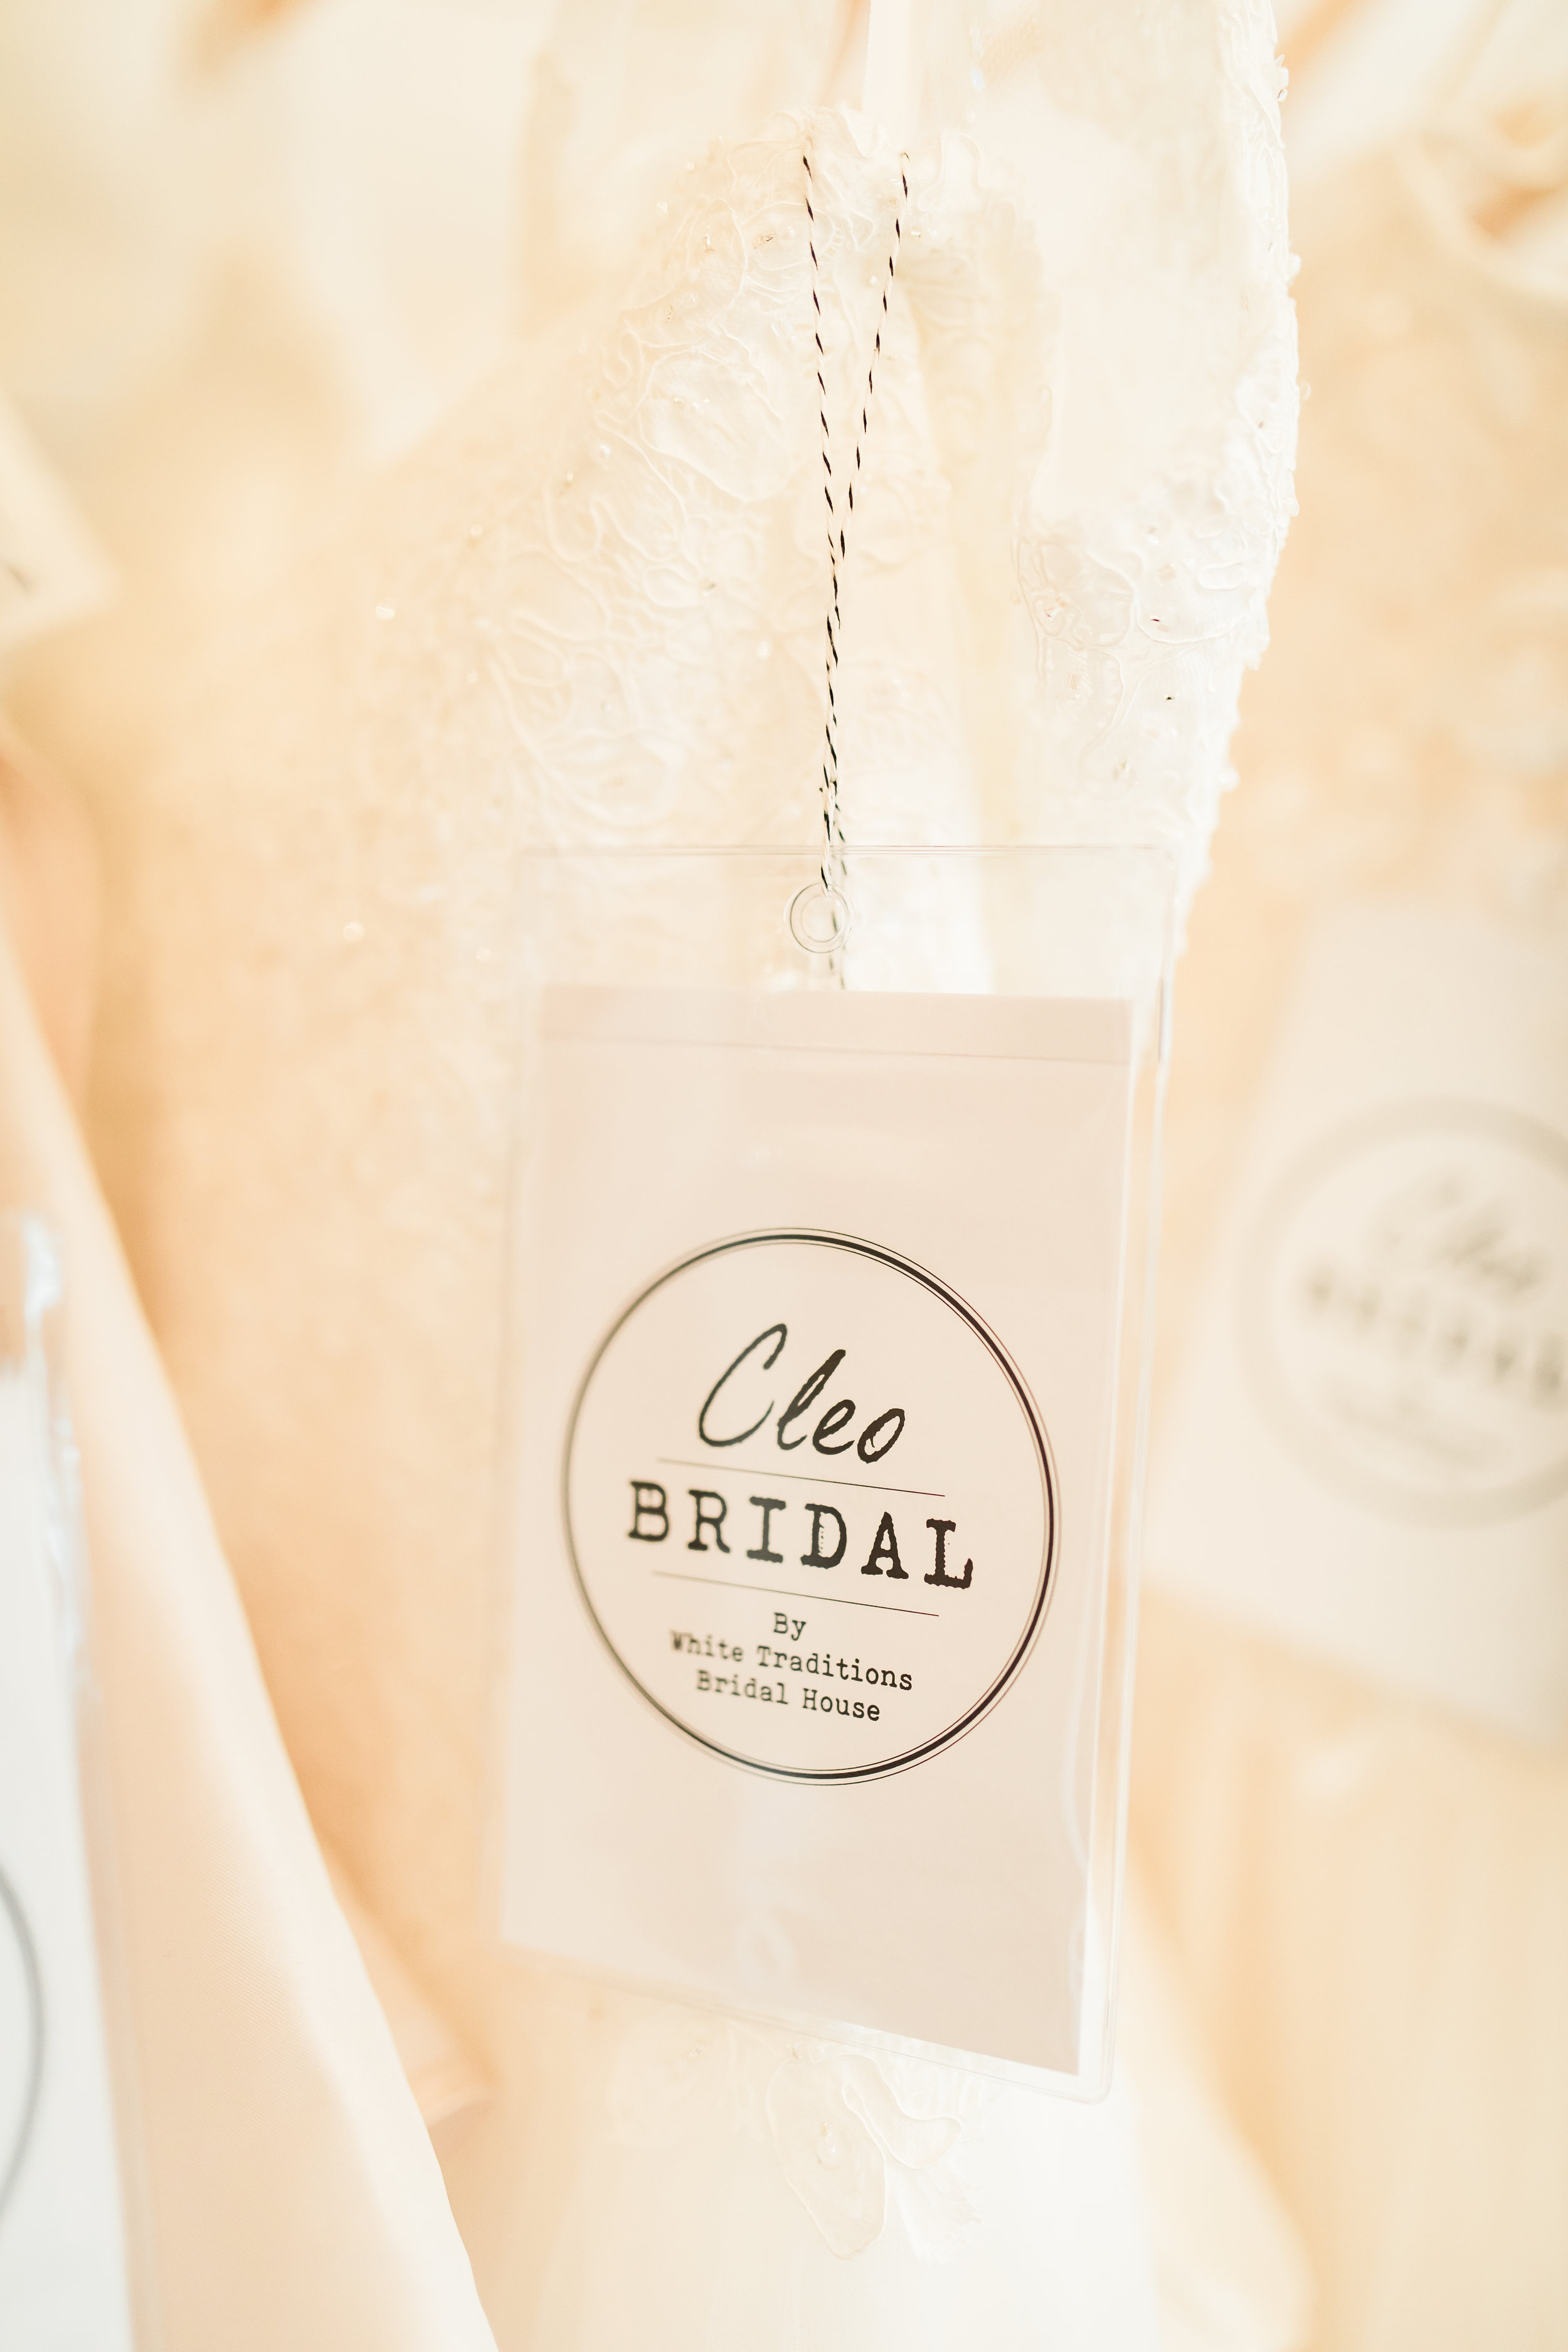 Cleo Bridal   White Traditions Sister-Store  O'Fallon, MO  Bridal Shop  Allison Slater Photography22.jpg